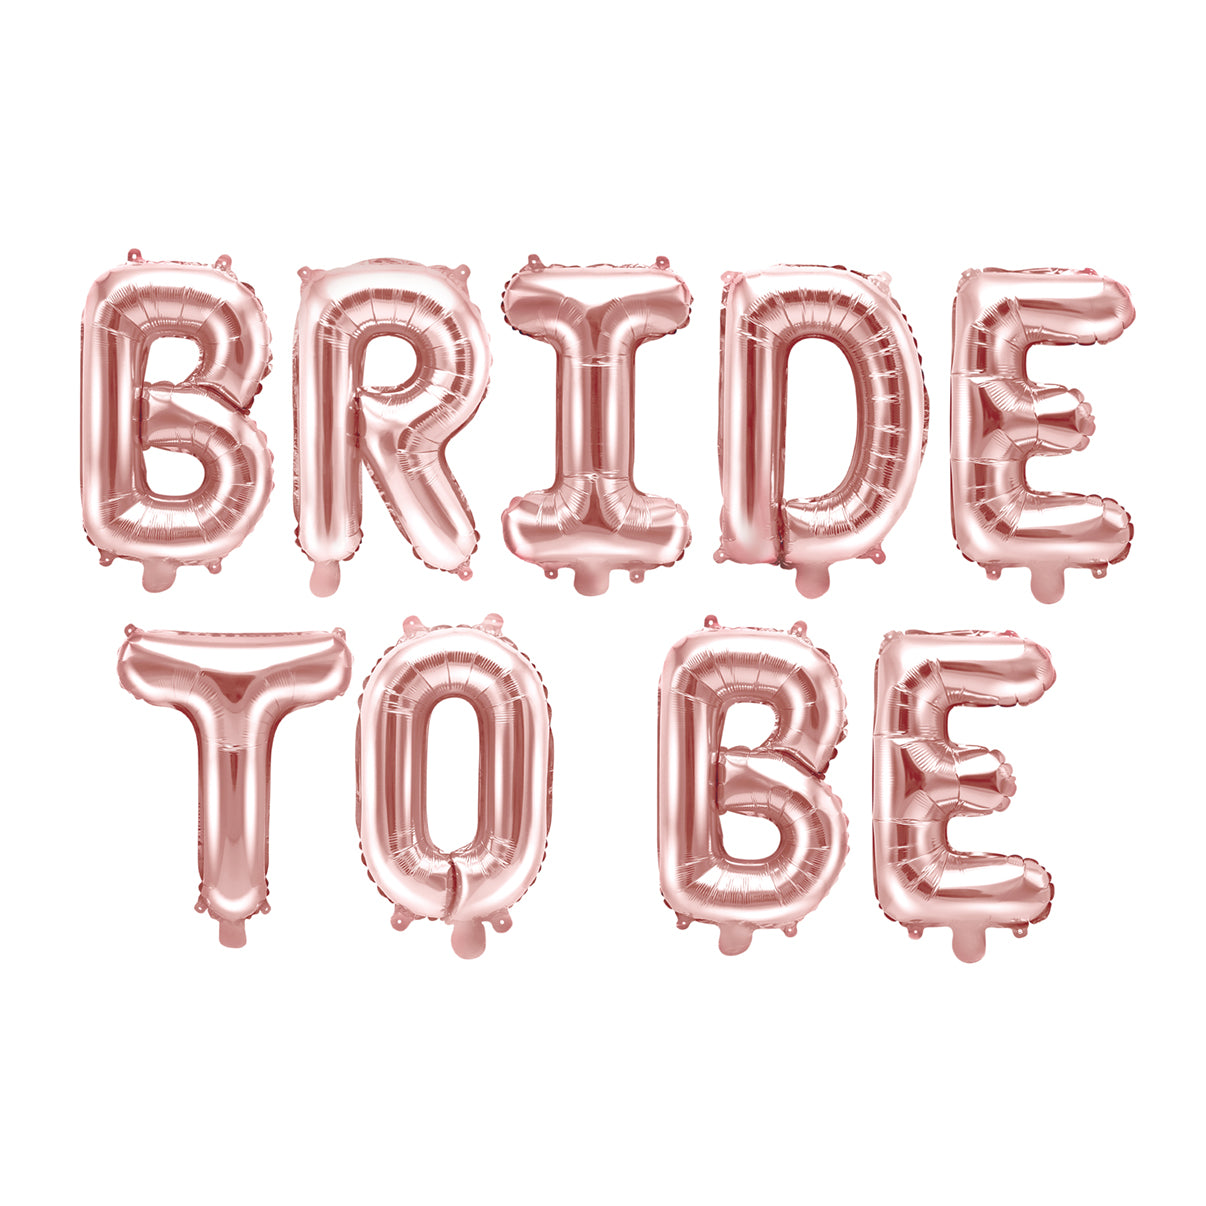 Rose Gold Bride to Be Letter Balloon Kit | The Party Darling